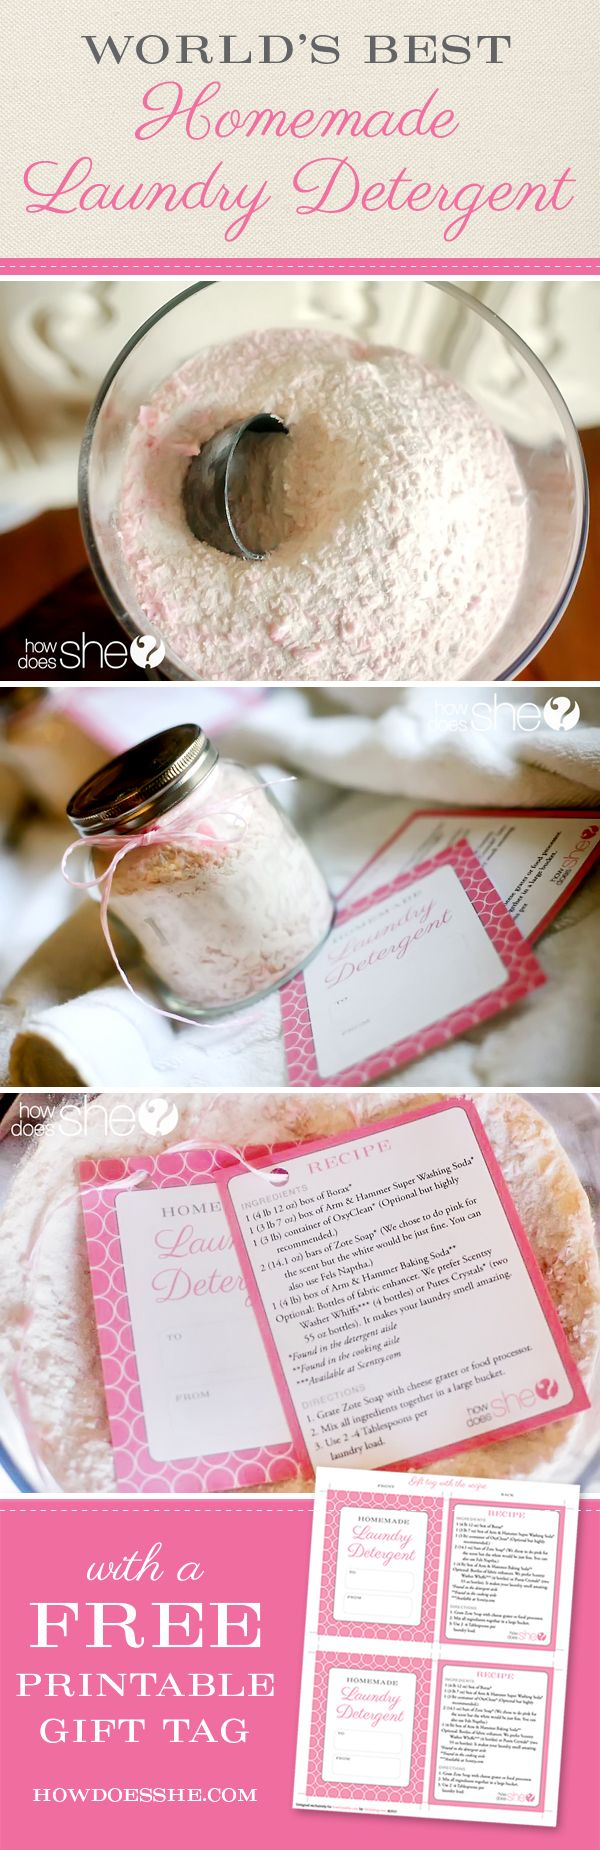 DIY and Crafts. Thousands of people have tried this recipe, and it seriously is The World's Best Homemade Laundry Detergent – There is a tutorial and free printable on how to gift if to friends/family.